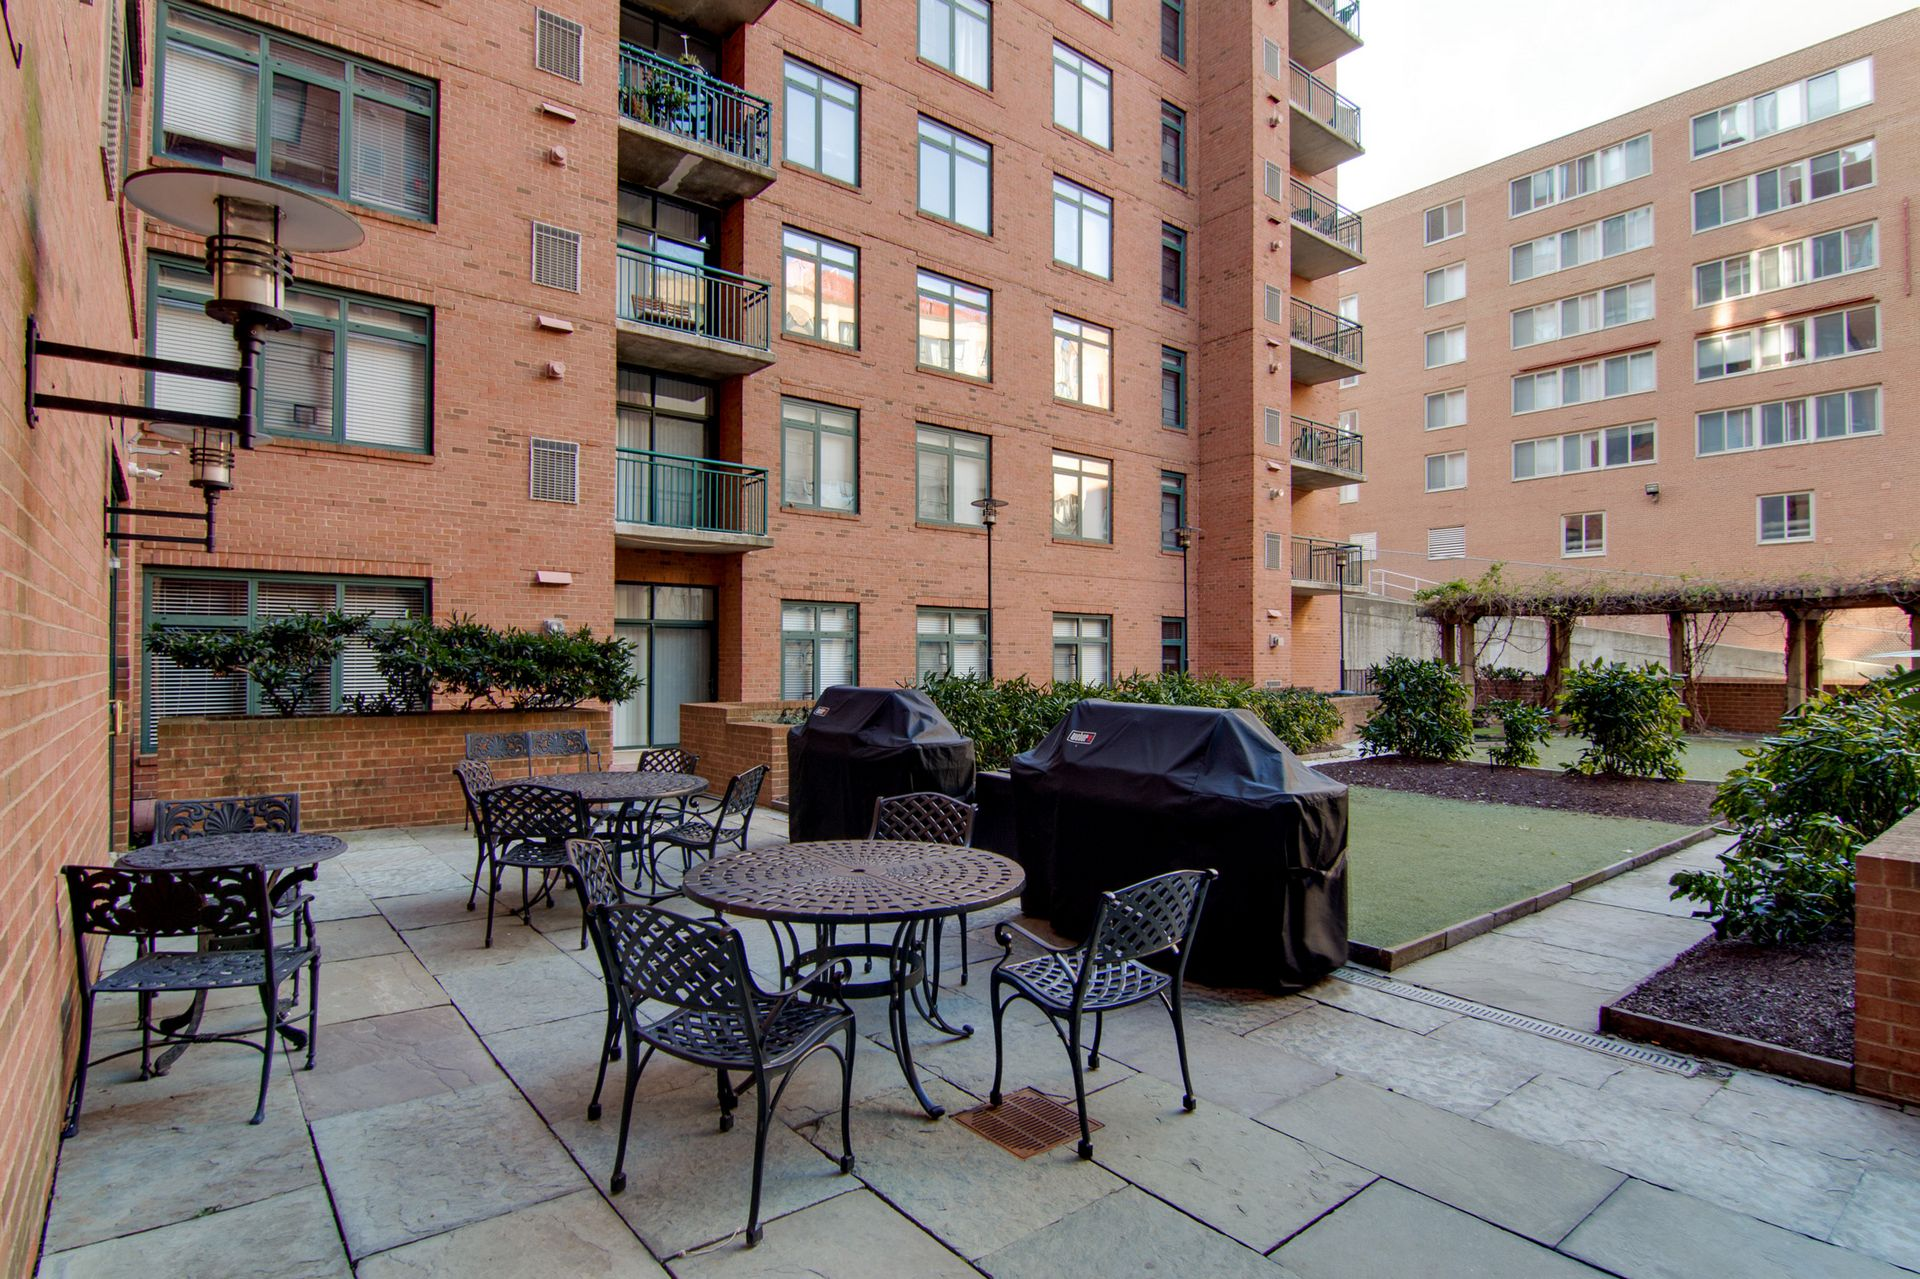 Outdoor seating area with grills